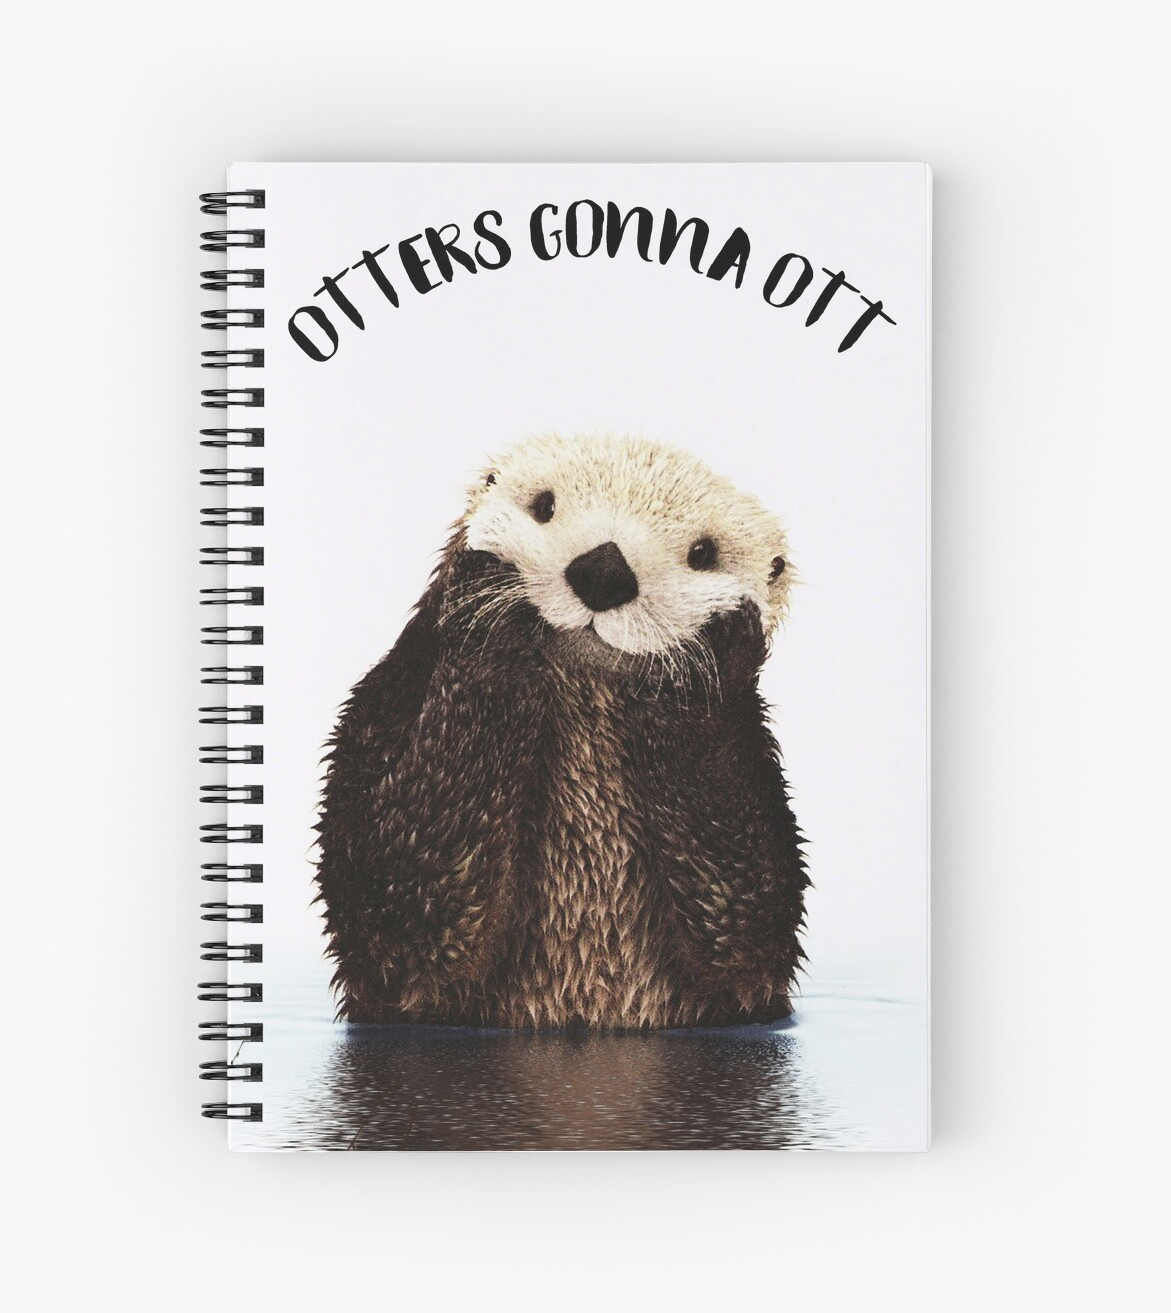 Otters Gonna Ott by Laura-Lise Wong